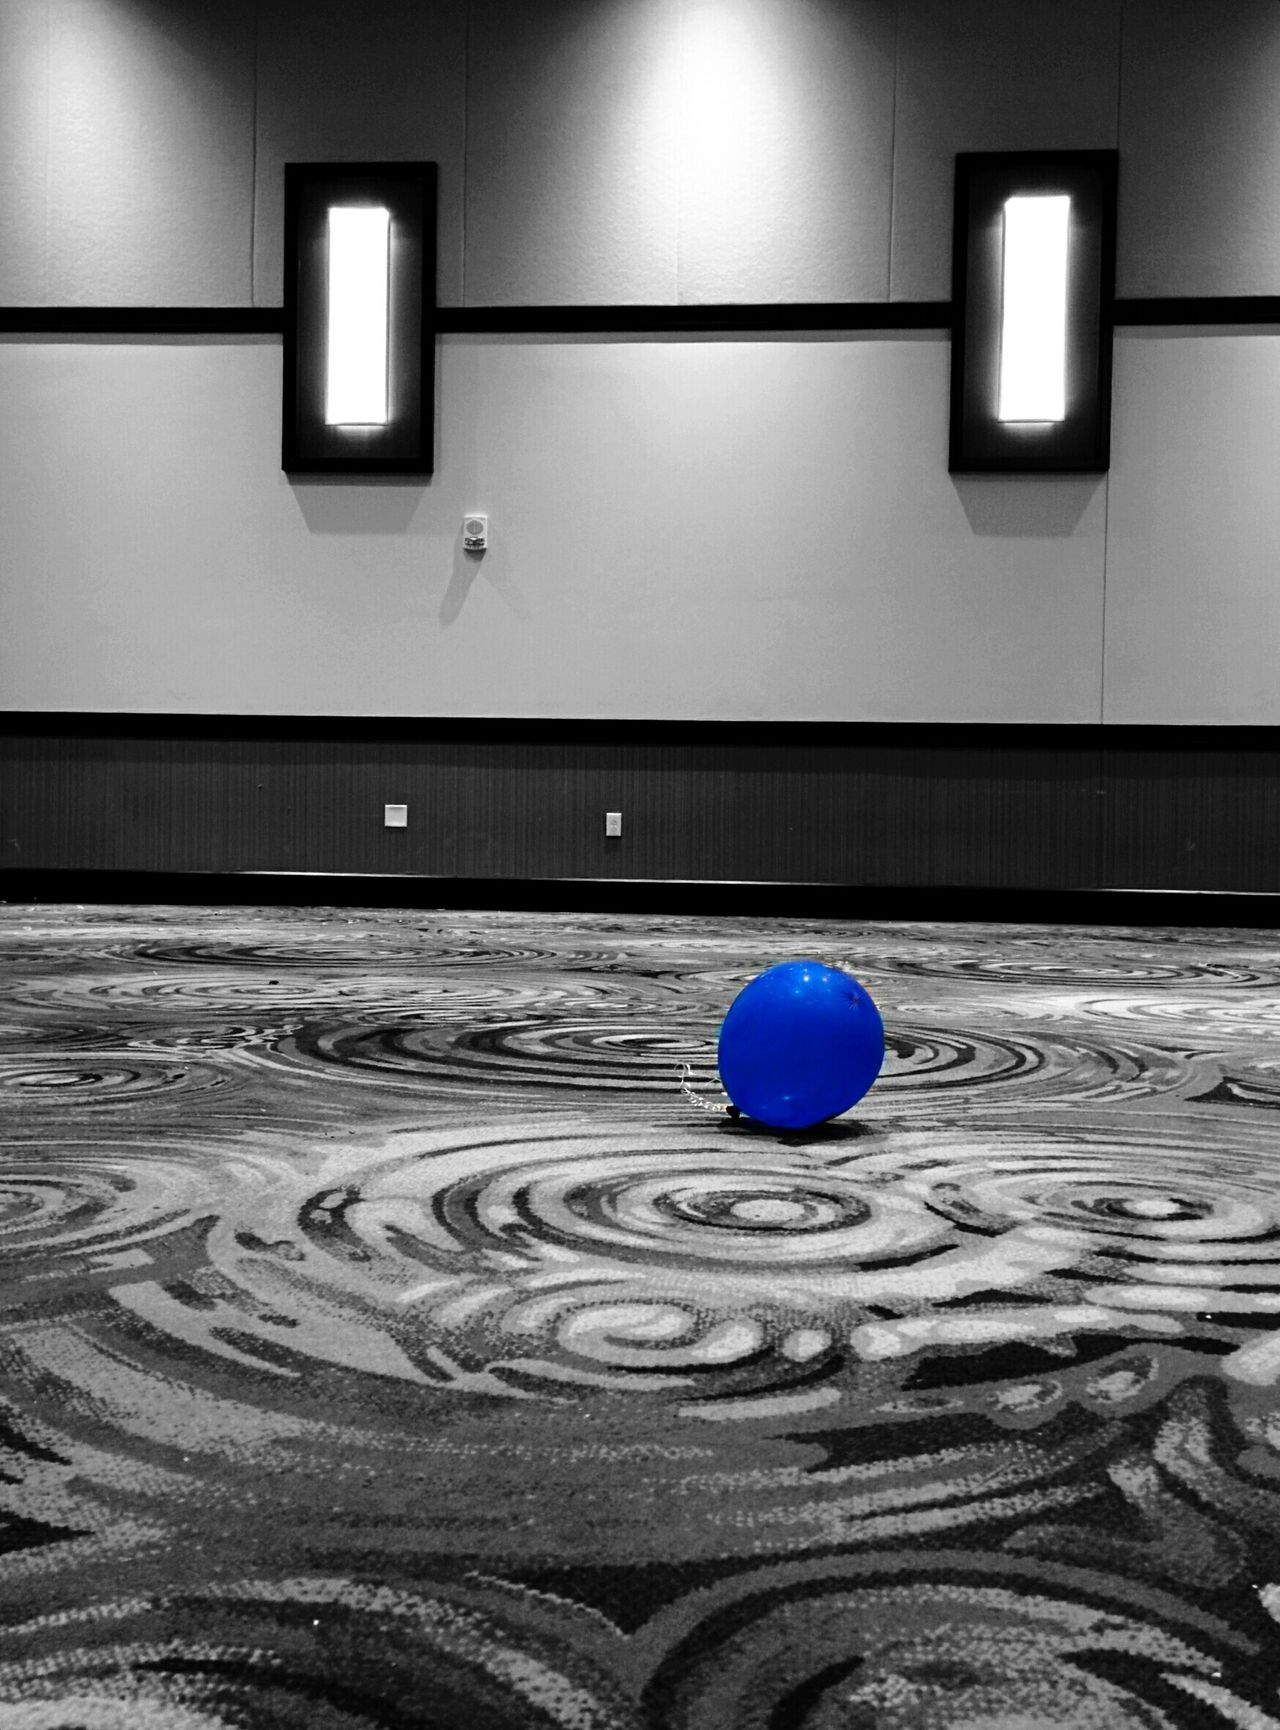 Little lost Balloon Lonely Banquet Hall Leftover Decorations